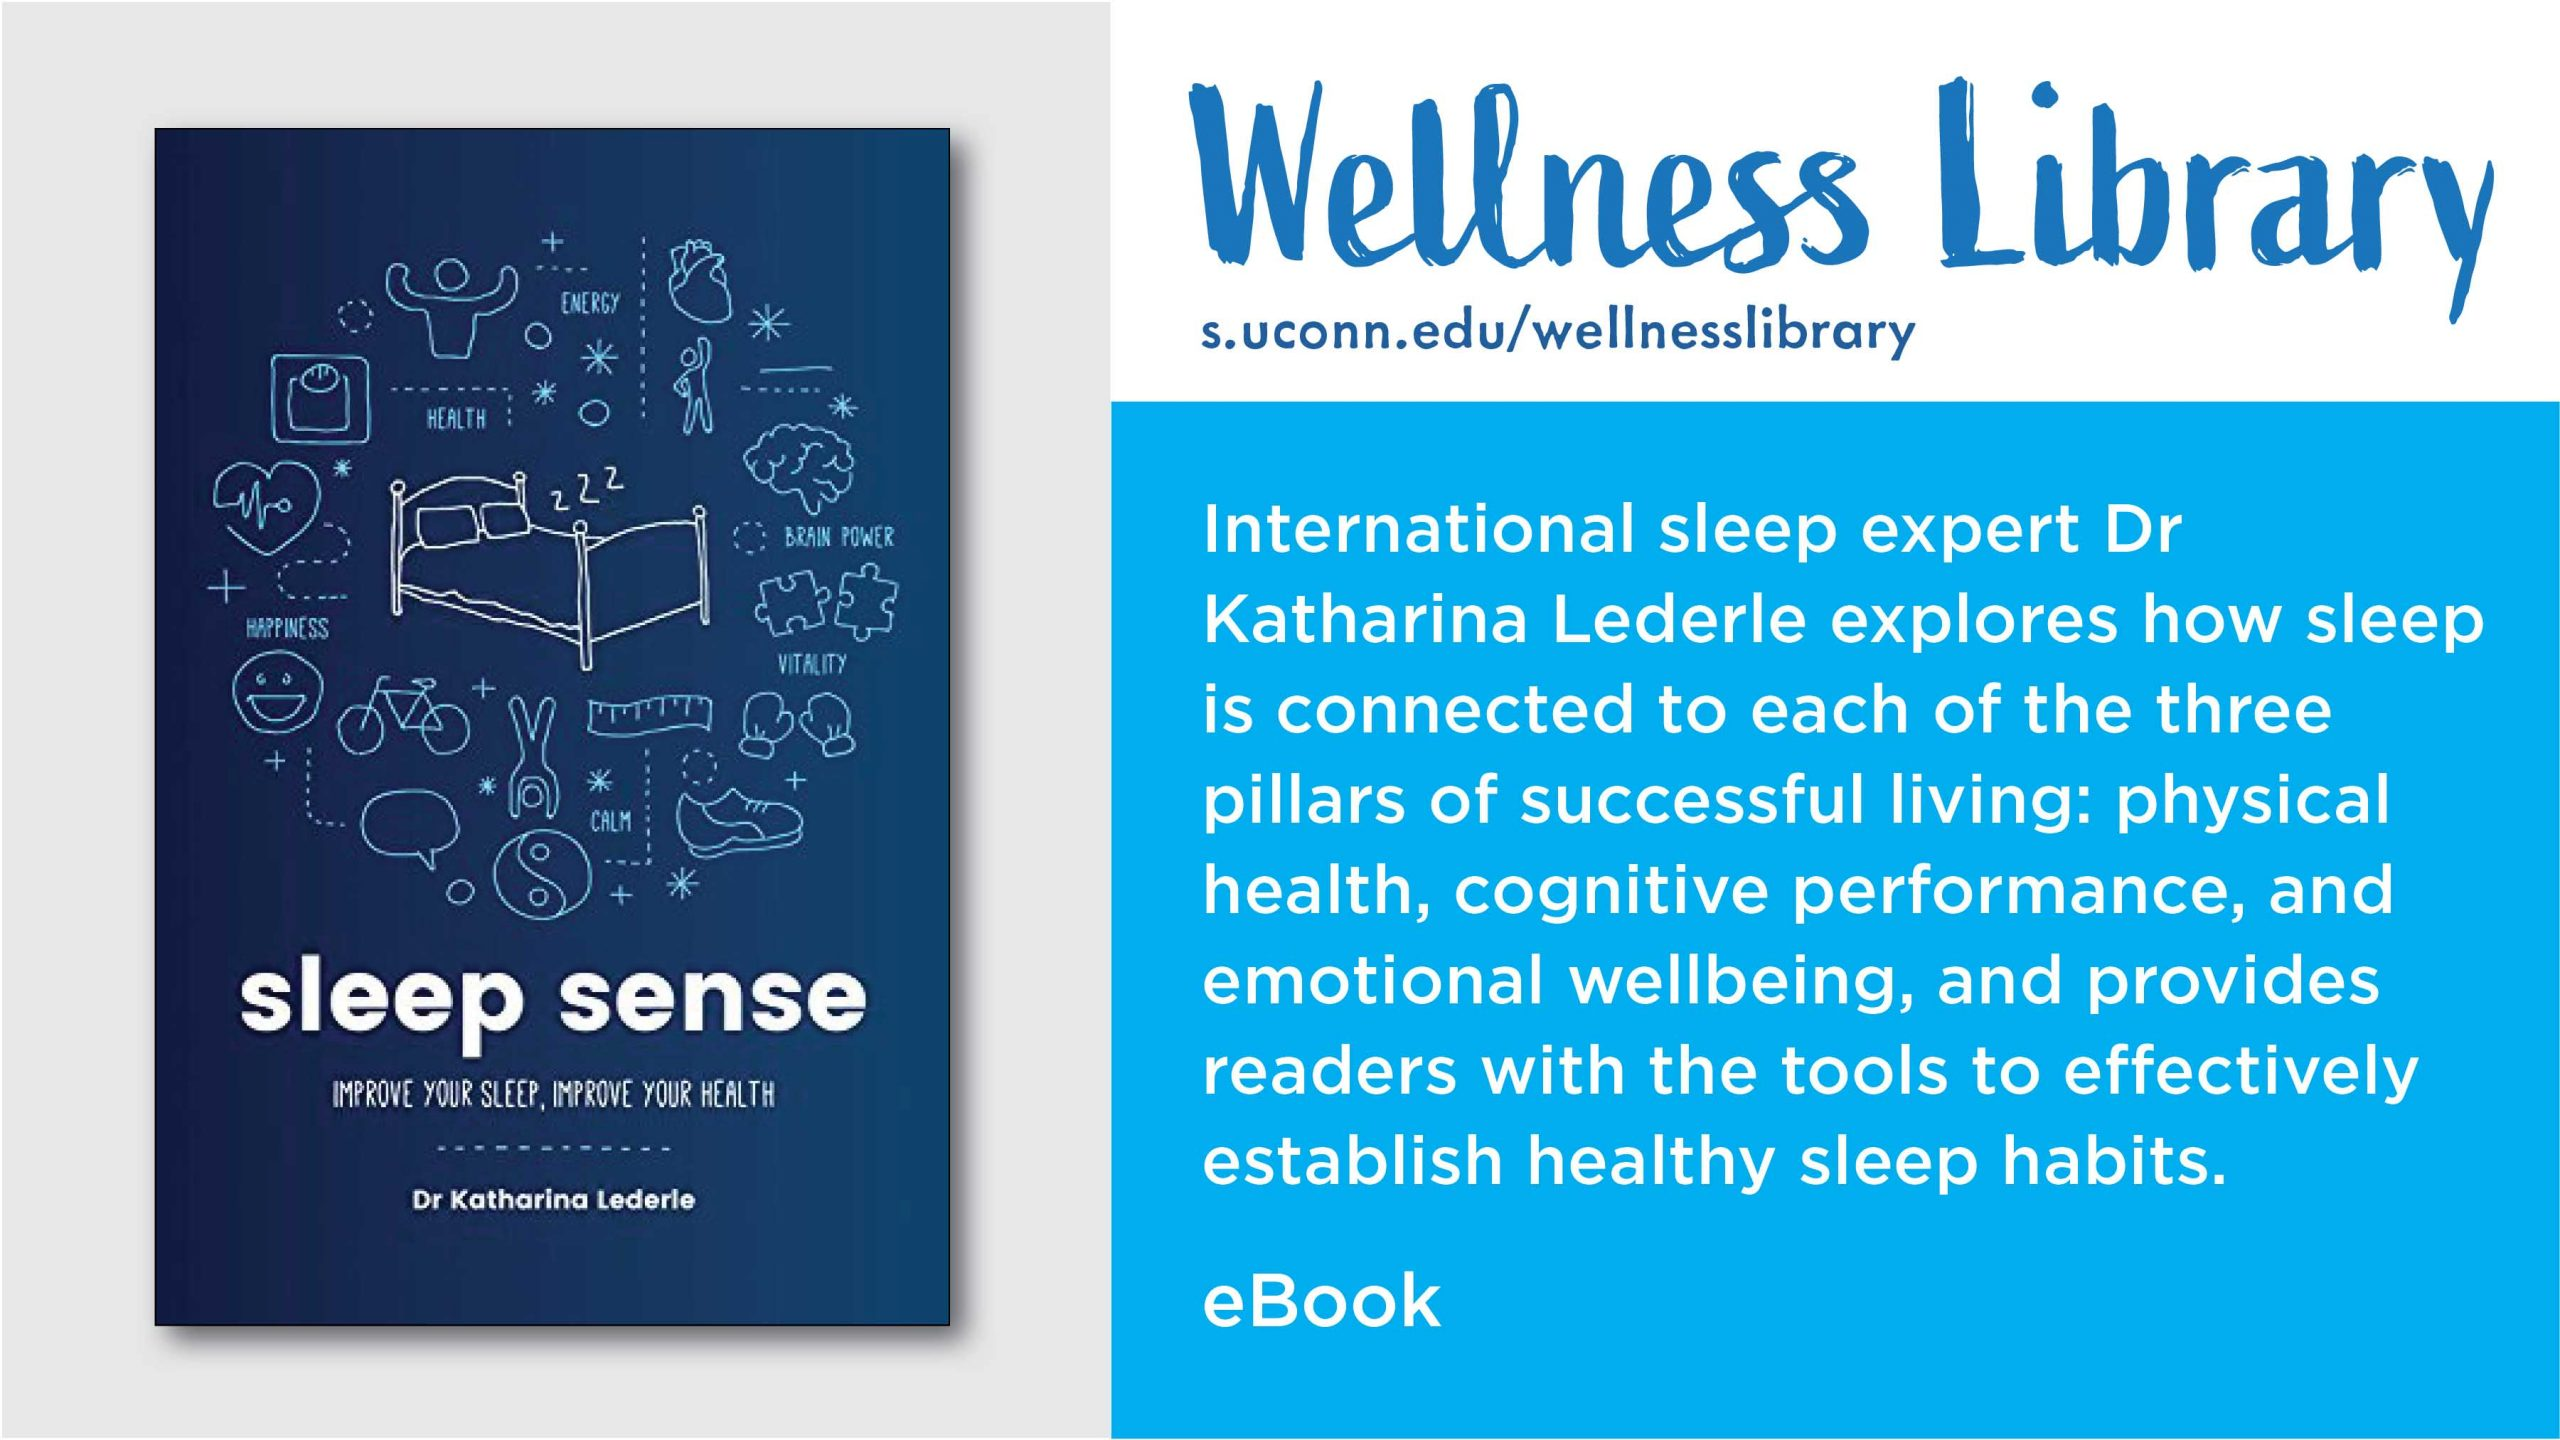 Wellness Library. International sleep expert Dr Katharina Lederle explores how sleep is connected to each of the three pillars of successful living: physical health, cognitive performance, and emotional wellbeing, and provides readers with the tools to effectively establish healthy sleep habits. eBook. Image of cover of book titled Sleep Sense.